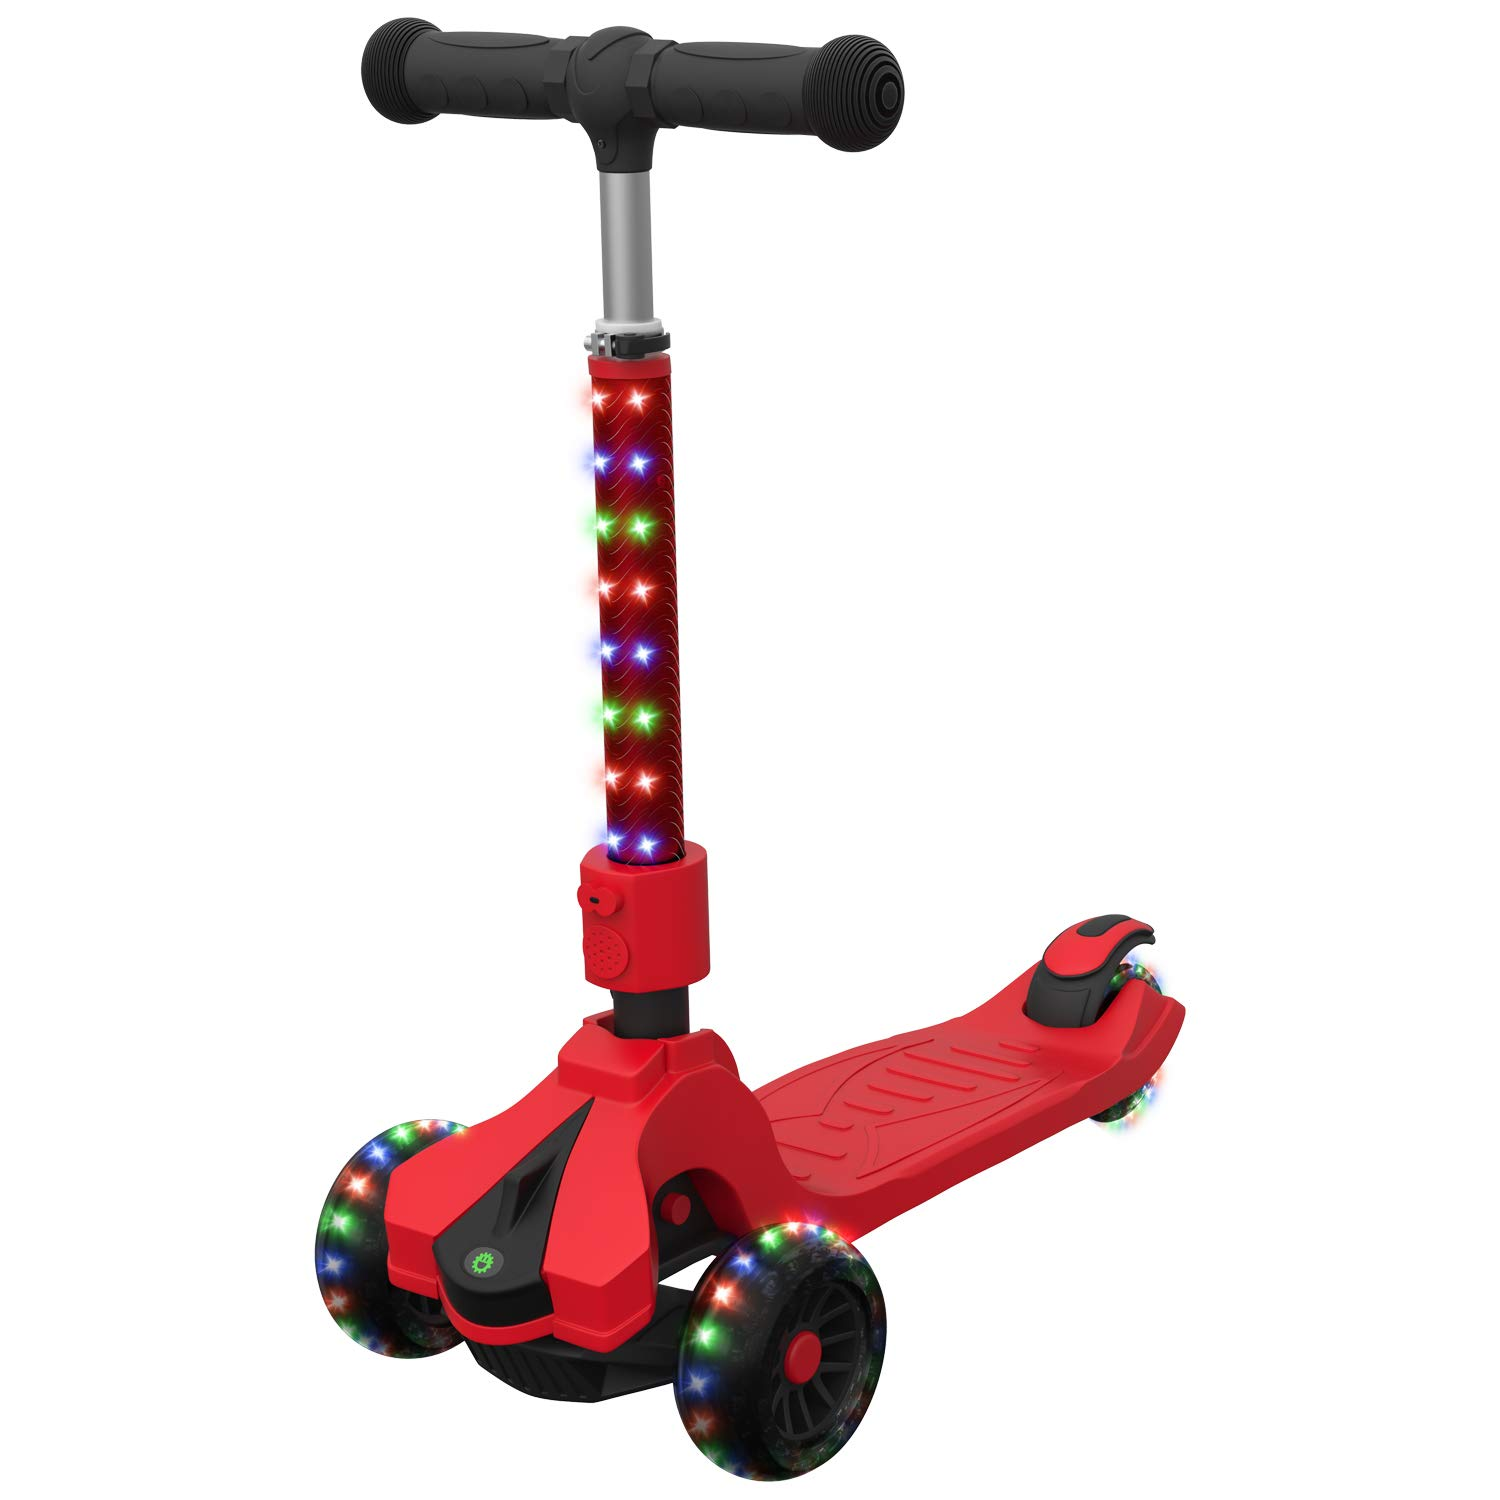 Jetson Saturn Folding 3-Wheel Kick Scooter with Light-Up Stem & Deck, Lean-to-Steer Design with Sturdy Wide Deck & Adjustable Height, for Kids 5 & Up, Red by Jetson Electric Bike